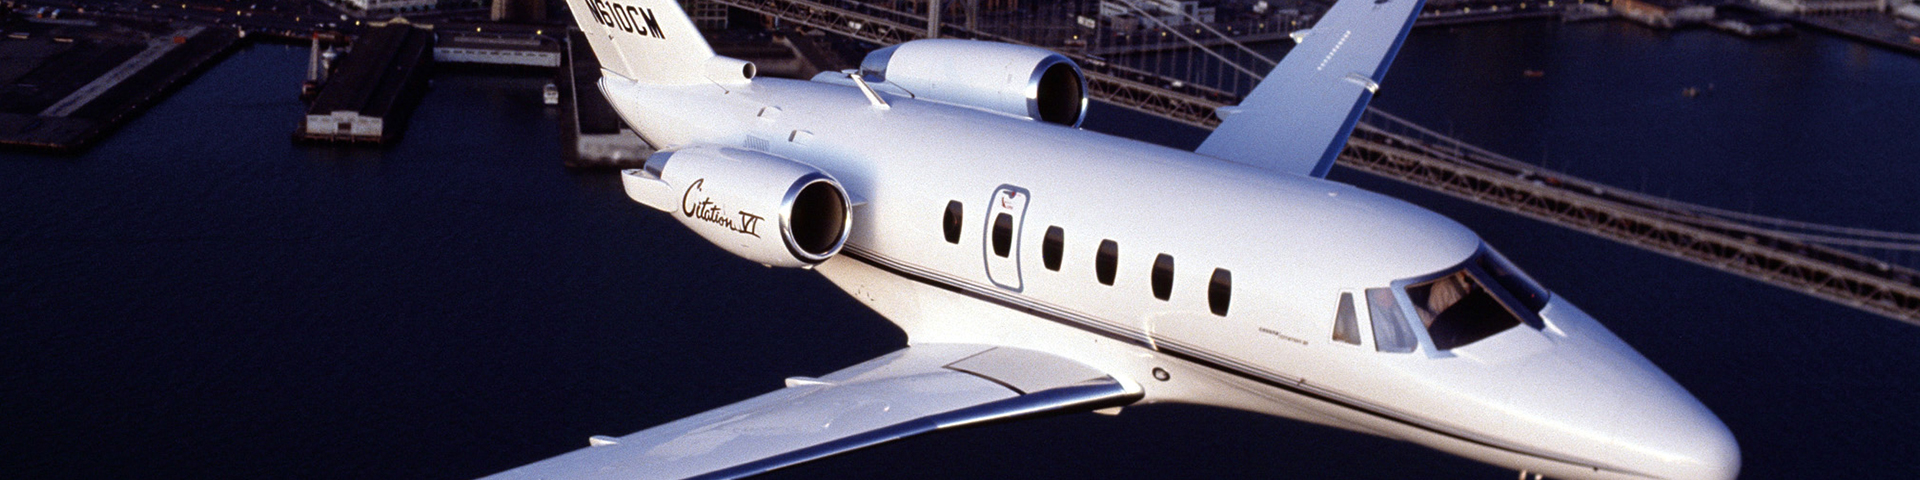 citation vi1 - Citation VI Private Jet